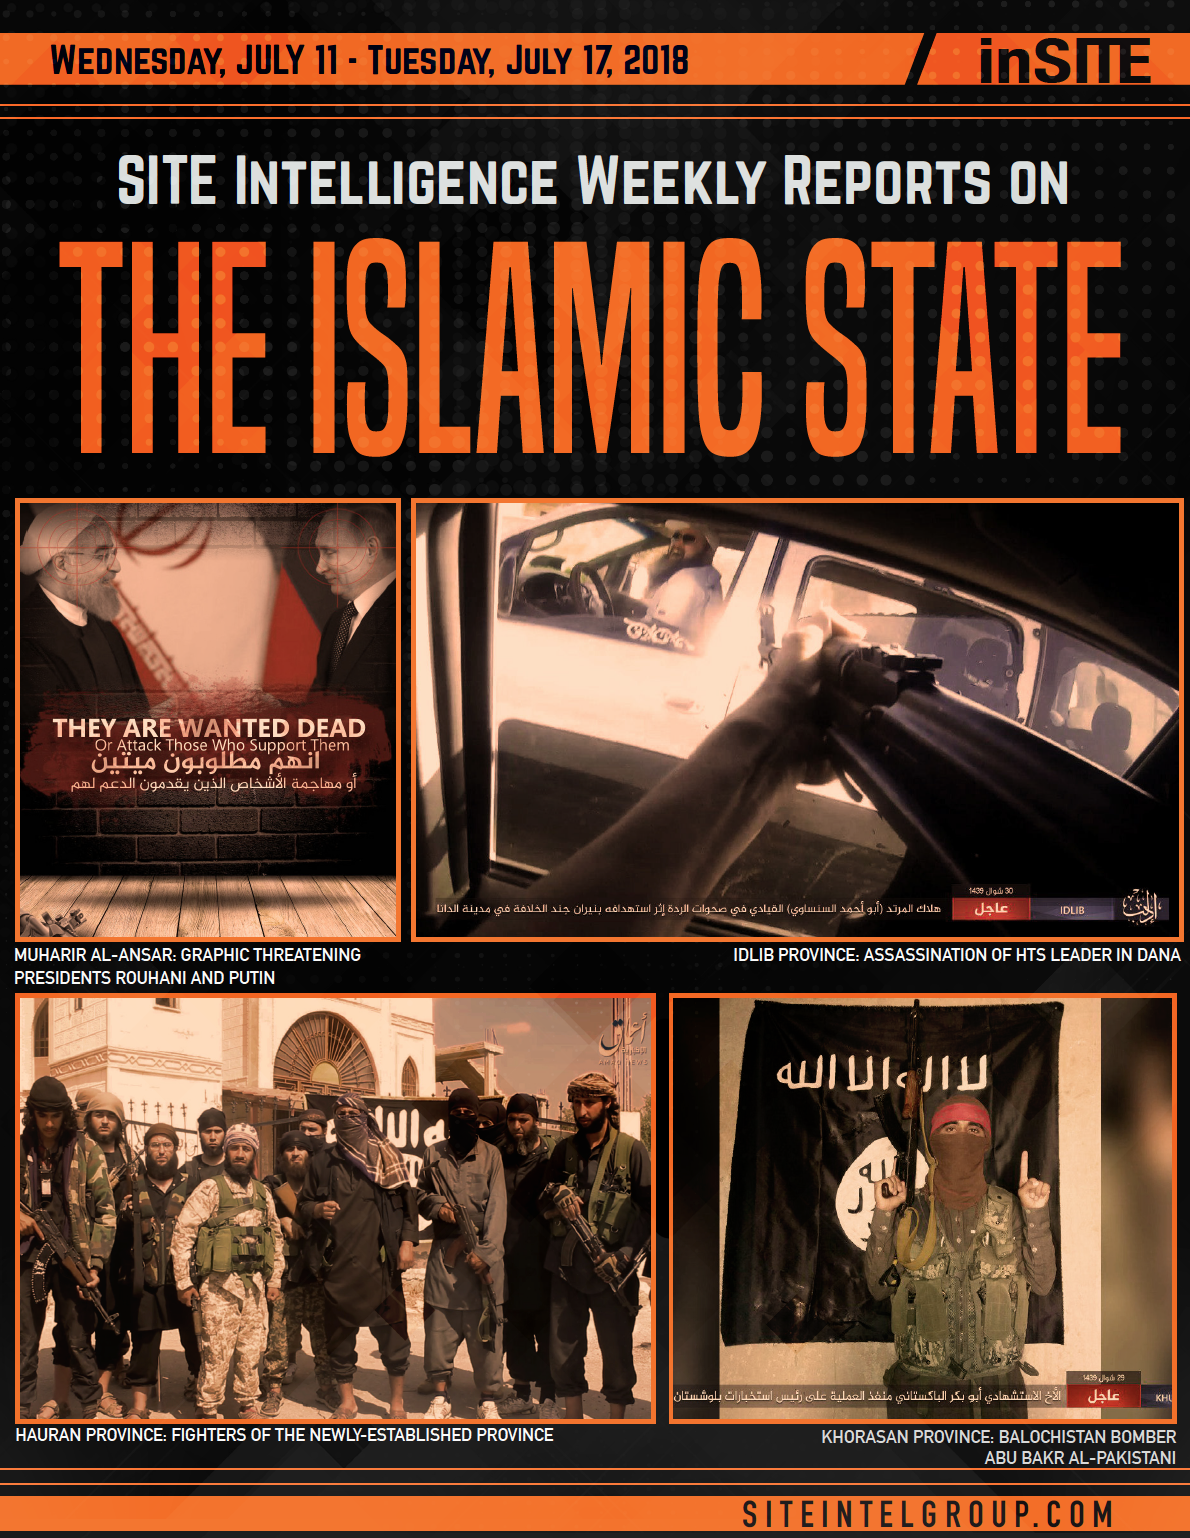 Weekly inSITE on the Islamic State for July 11-17, 2018